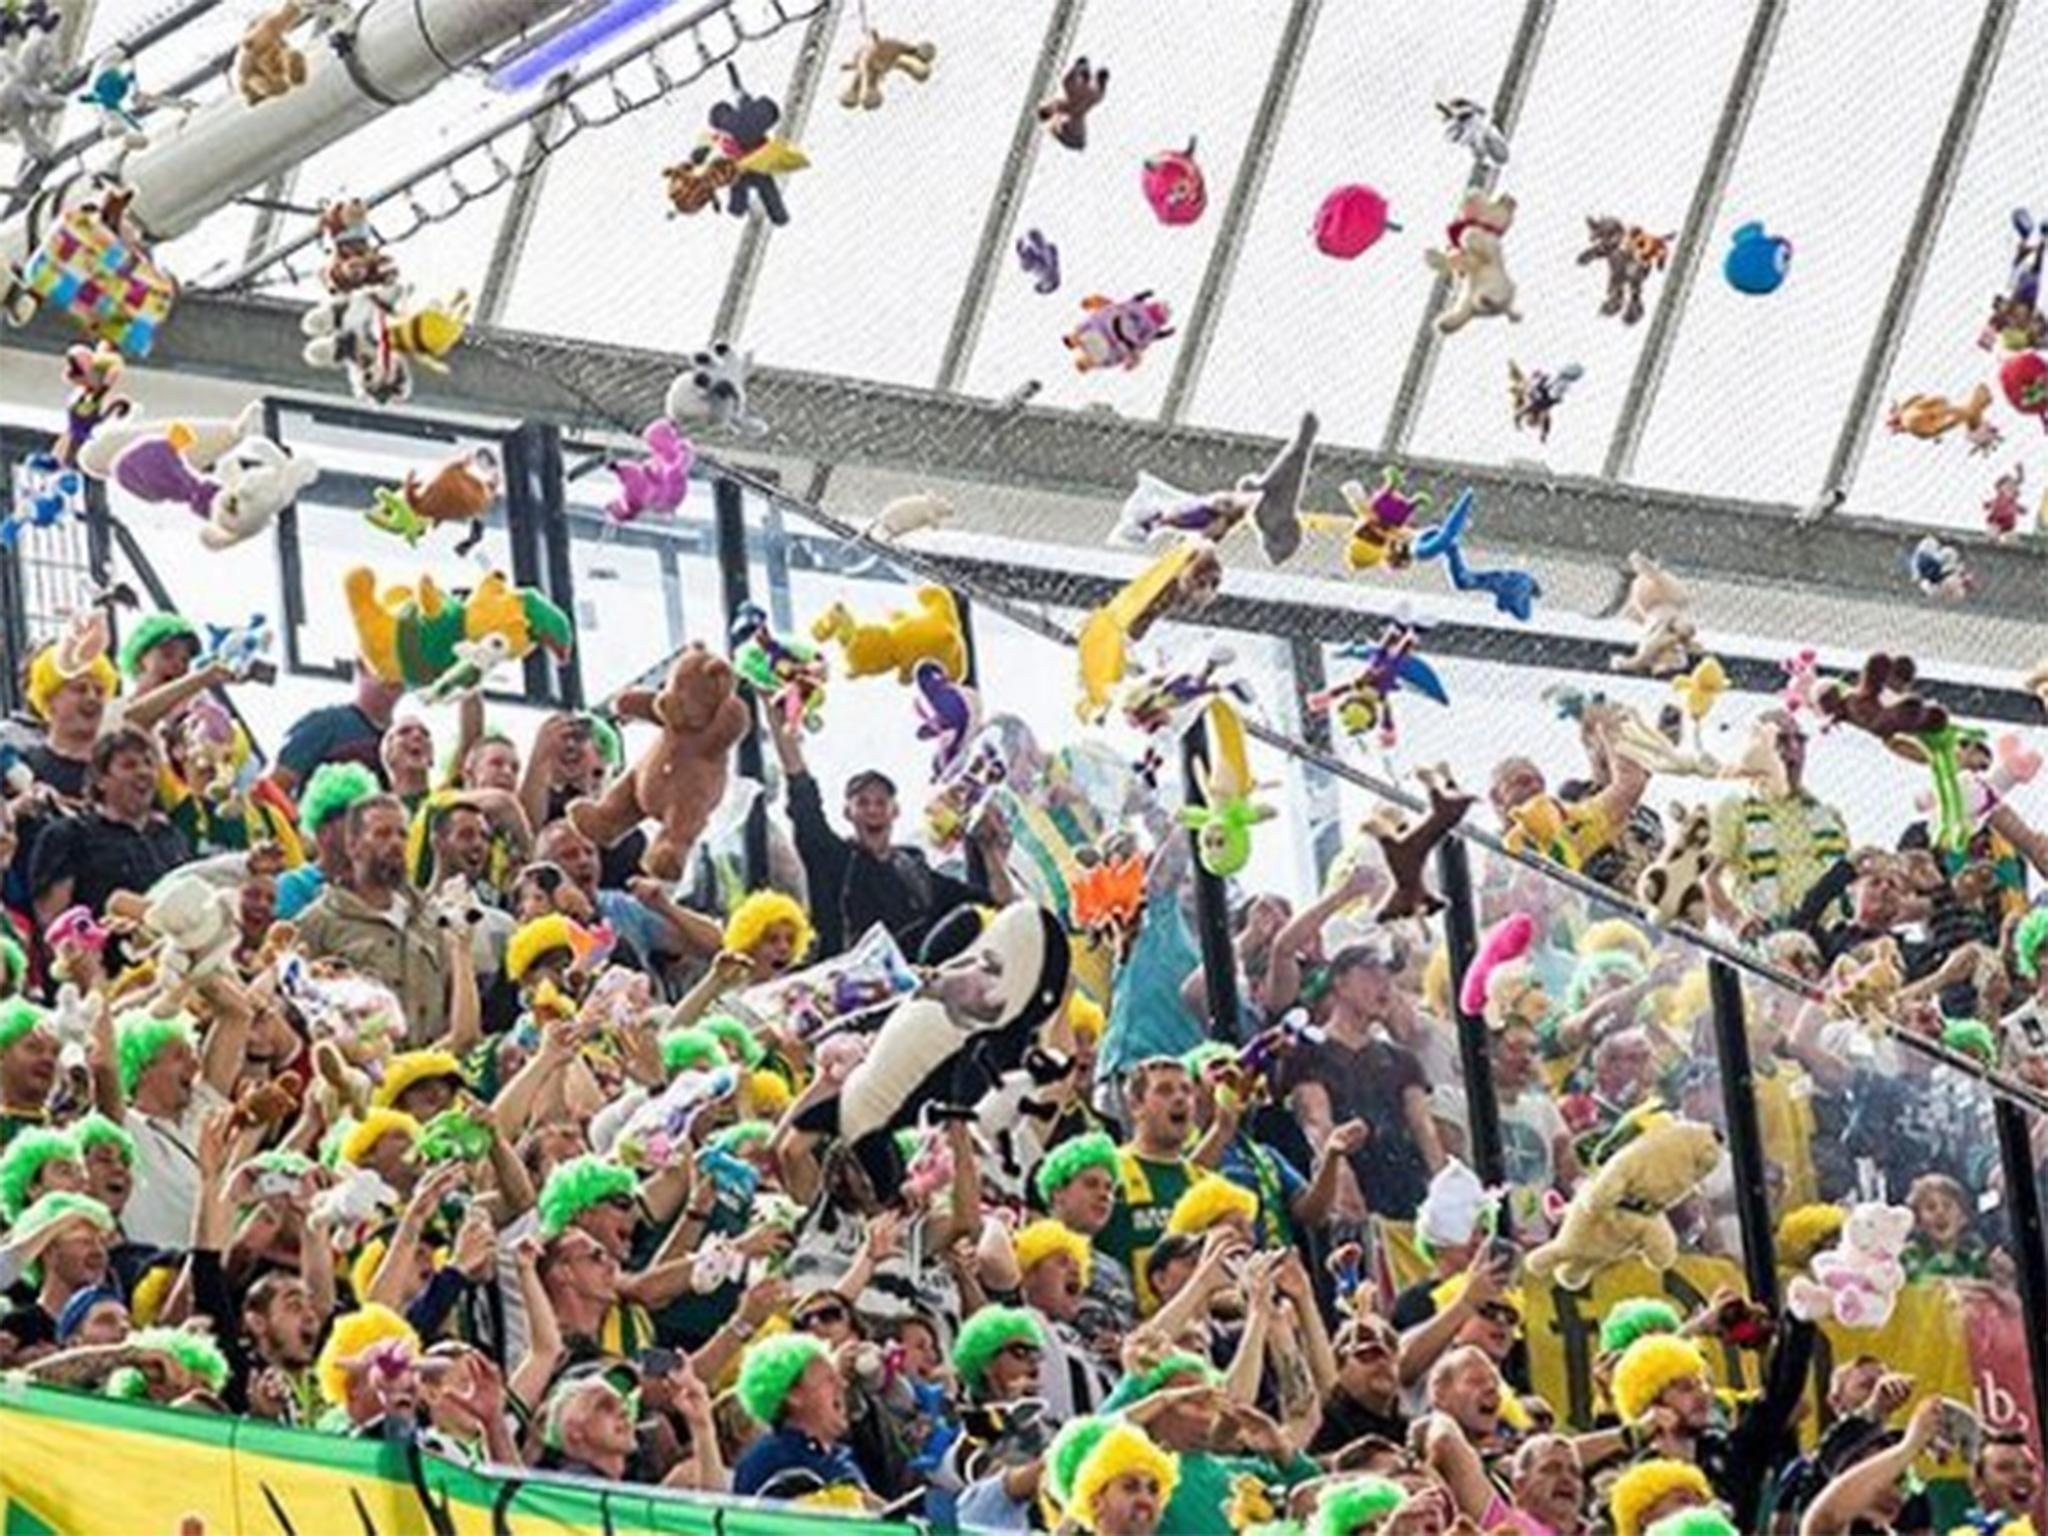 Den Haag Fans Bombard Feyenoord Rivals With Teddy Bears During Eredivisie Match The Independent The Independent